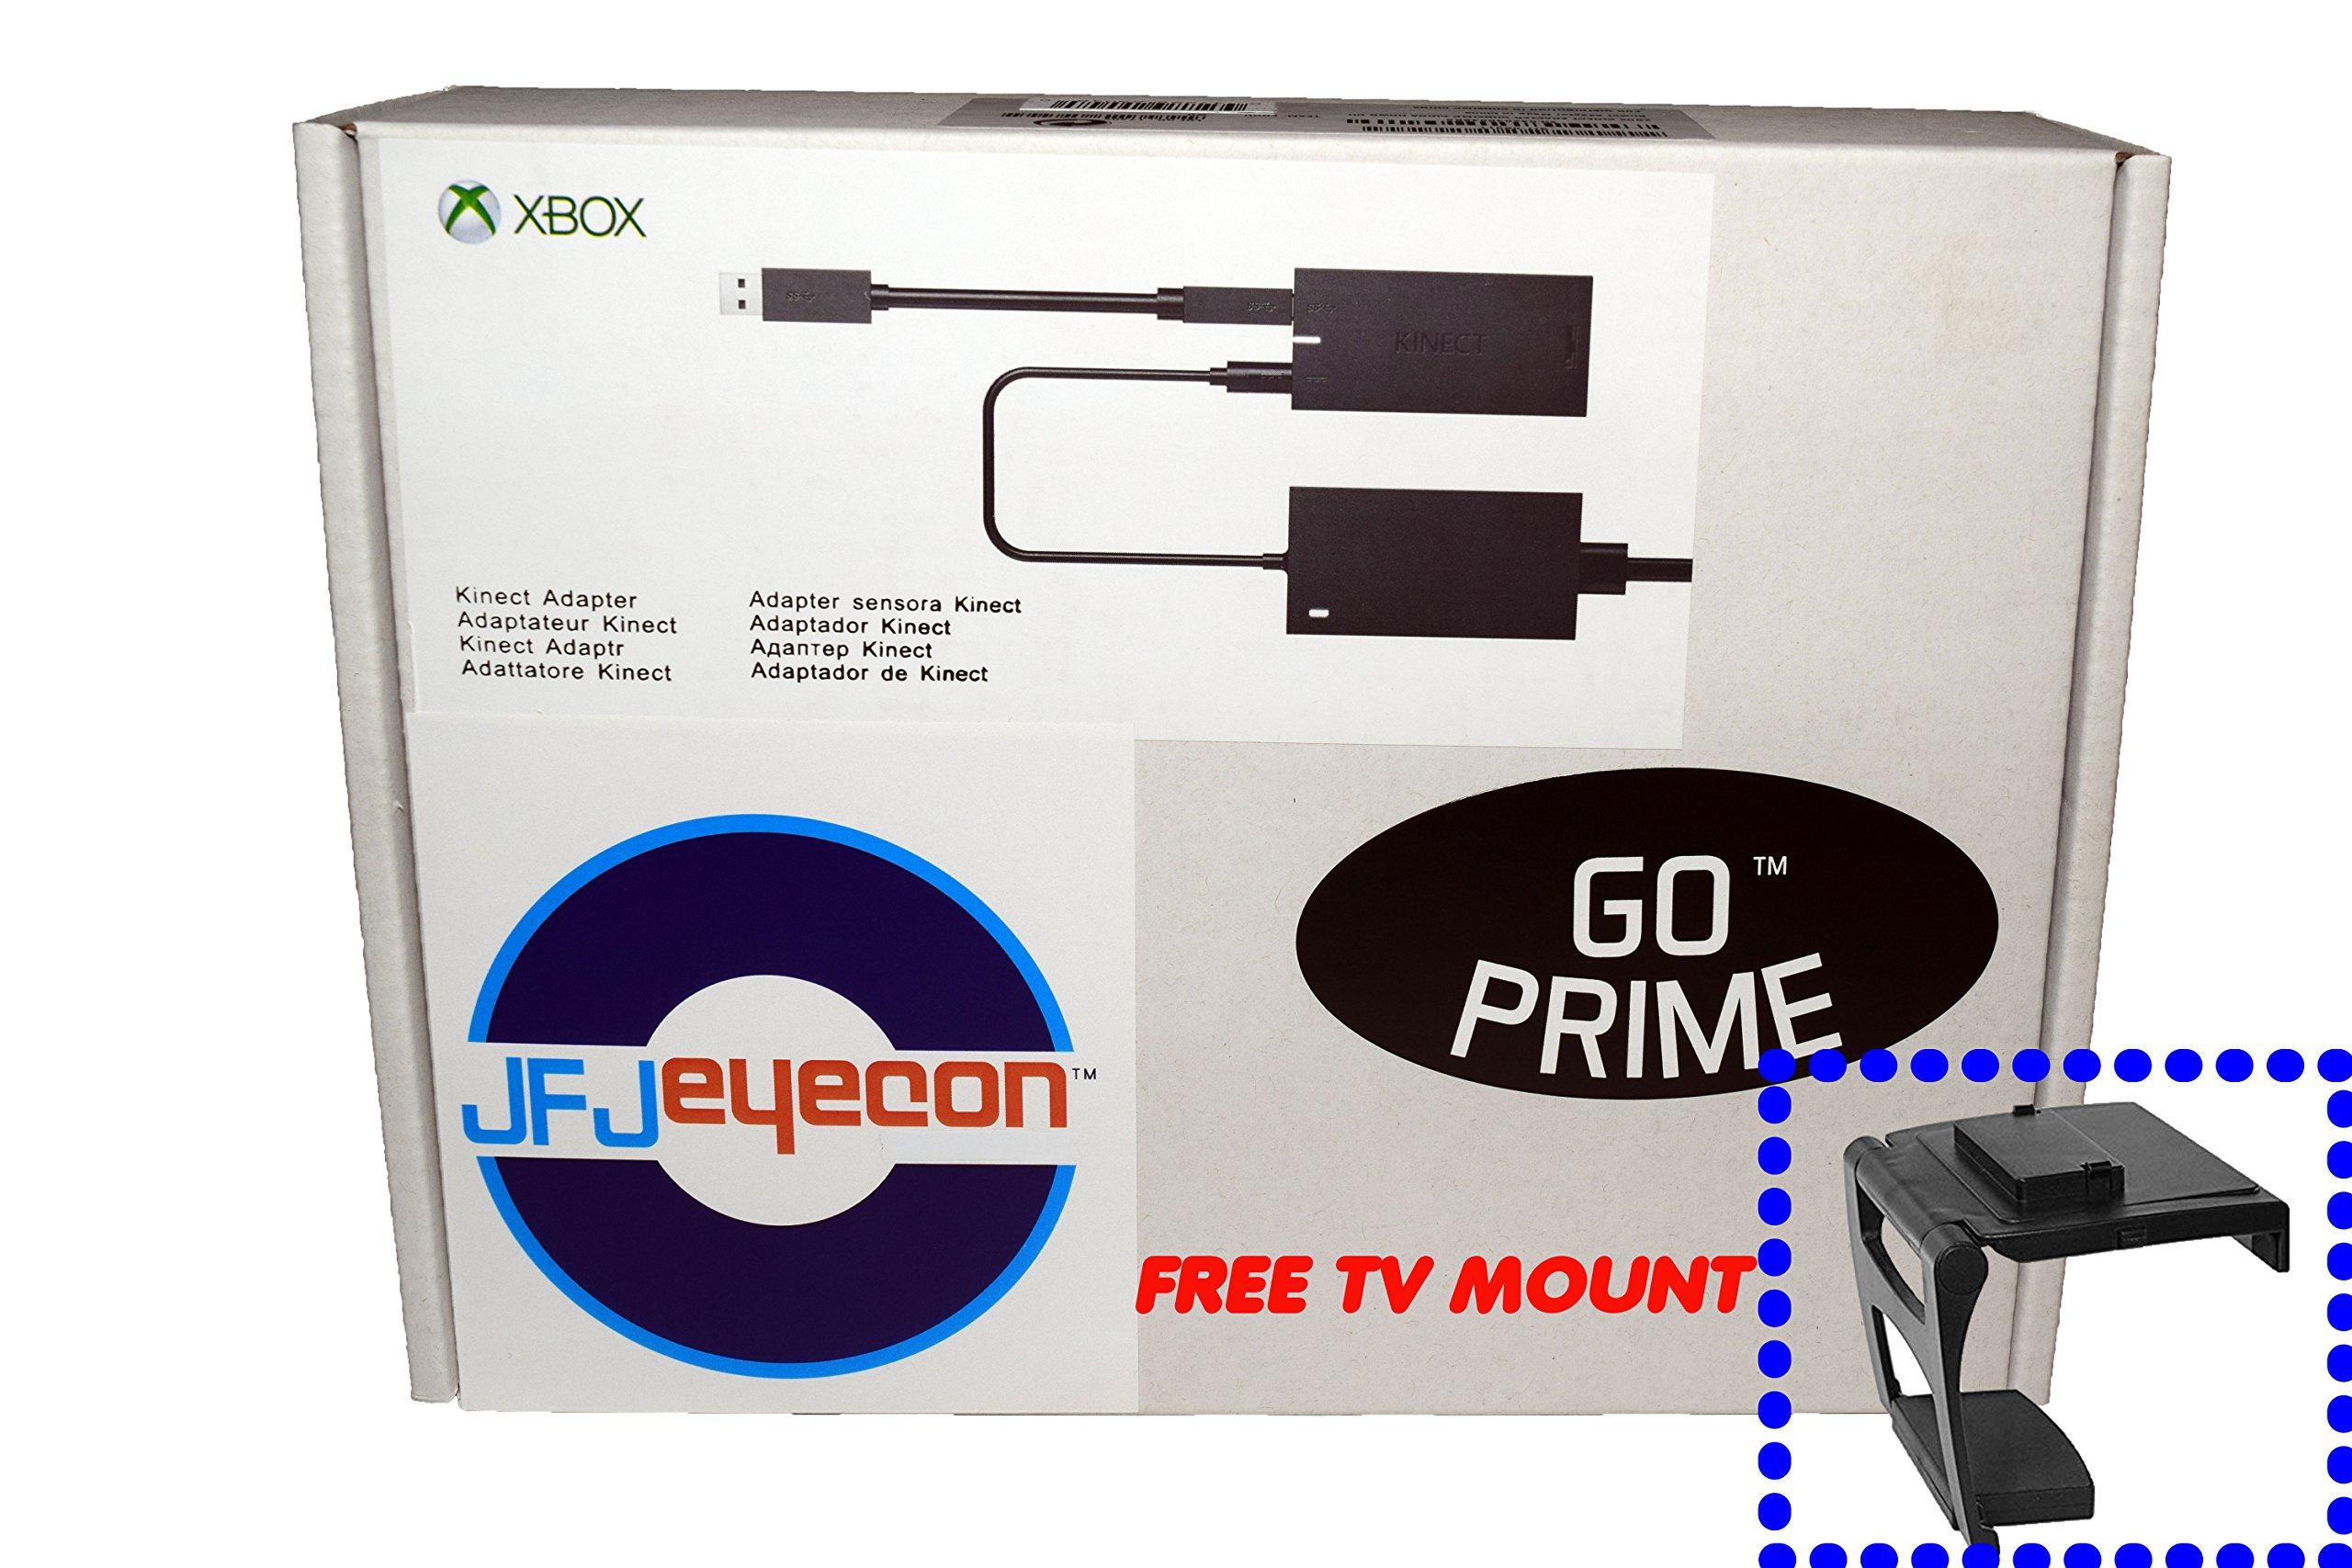 Xbox Kinect Adapter for Xbox One S, Xbox One X, and Windows 10 PC with Free TV Mount (Generic, New with Go Prime Seal)